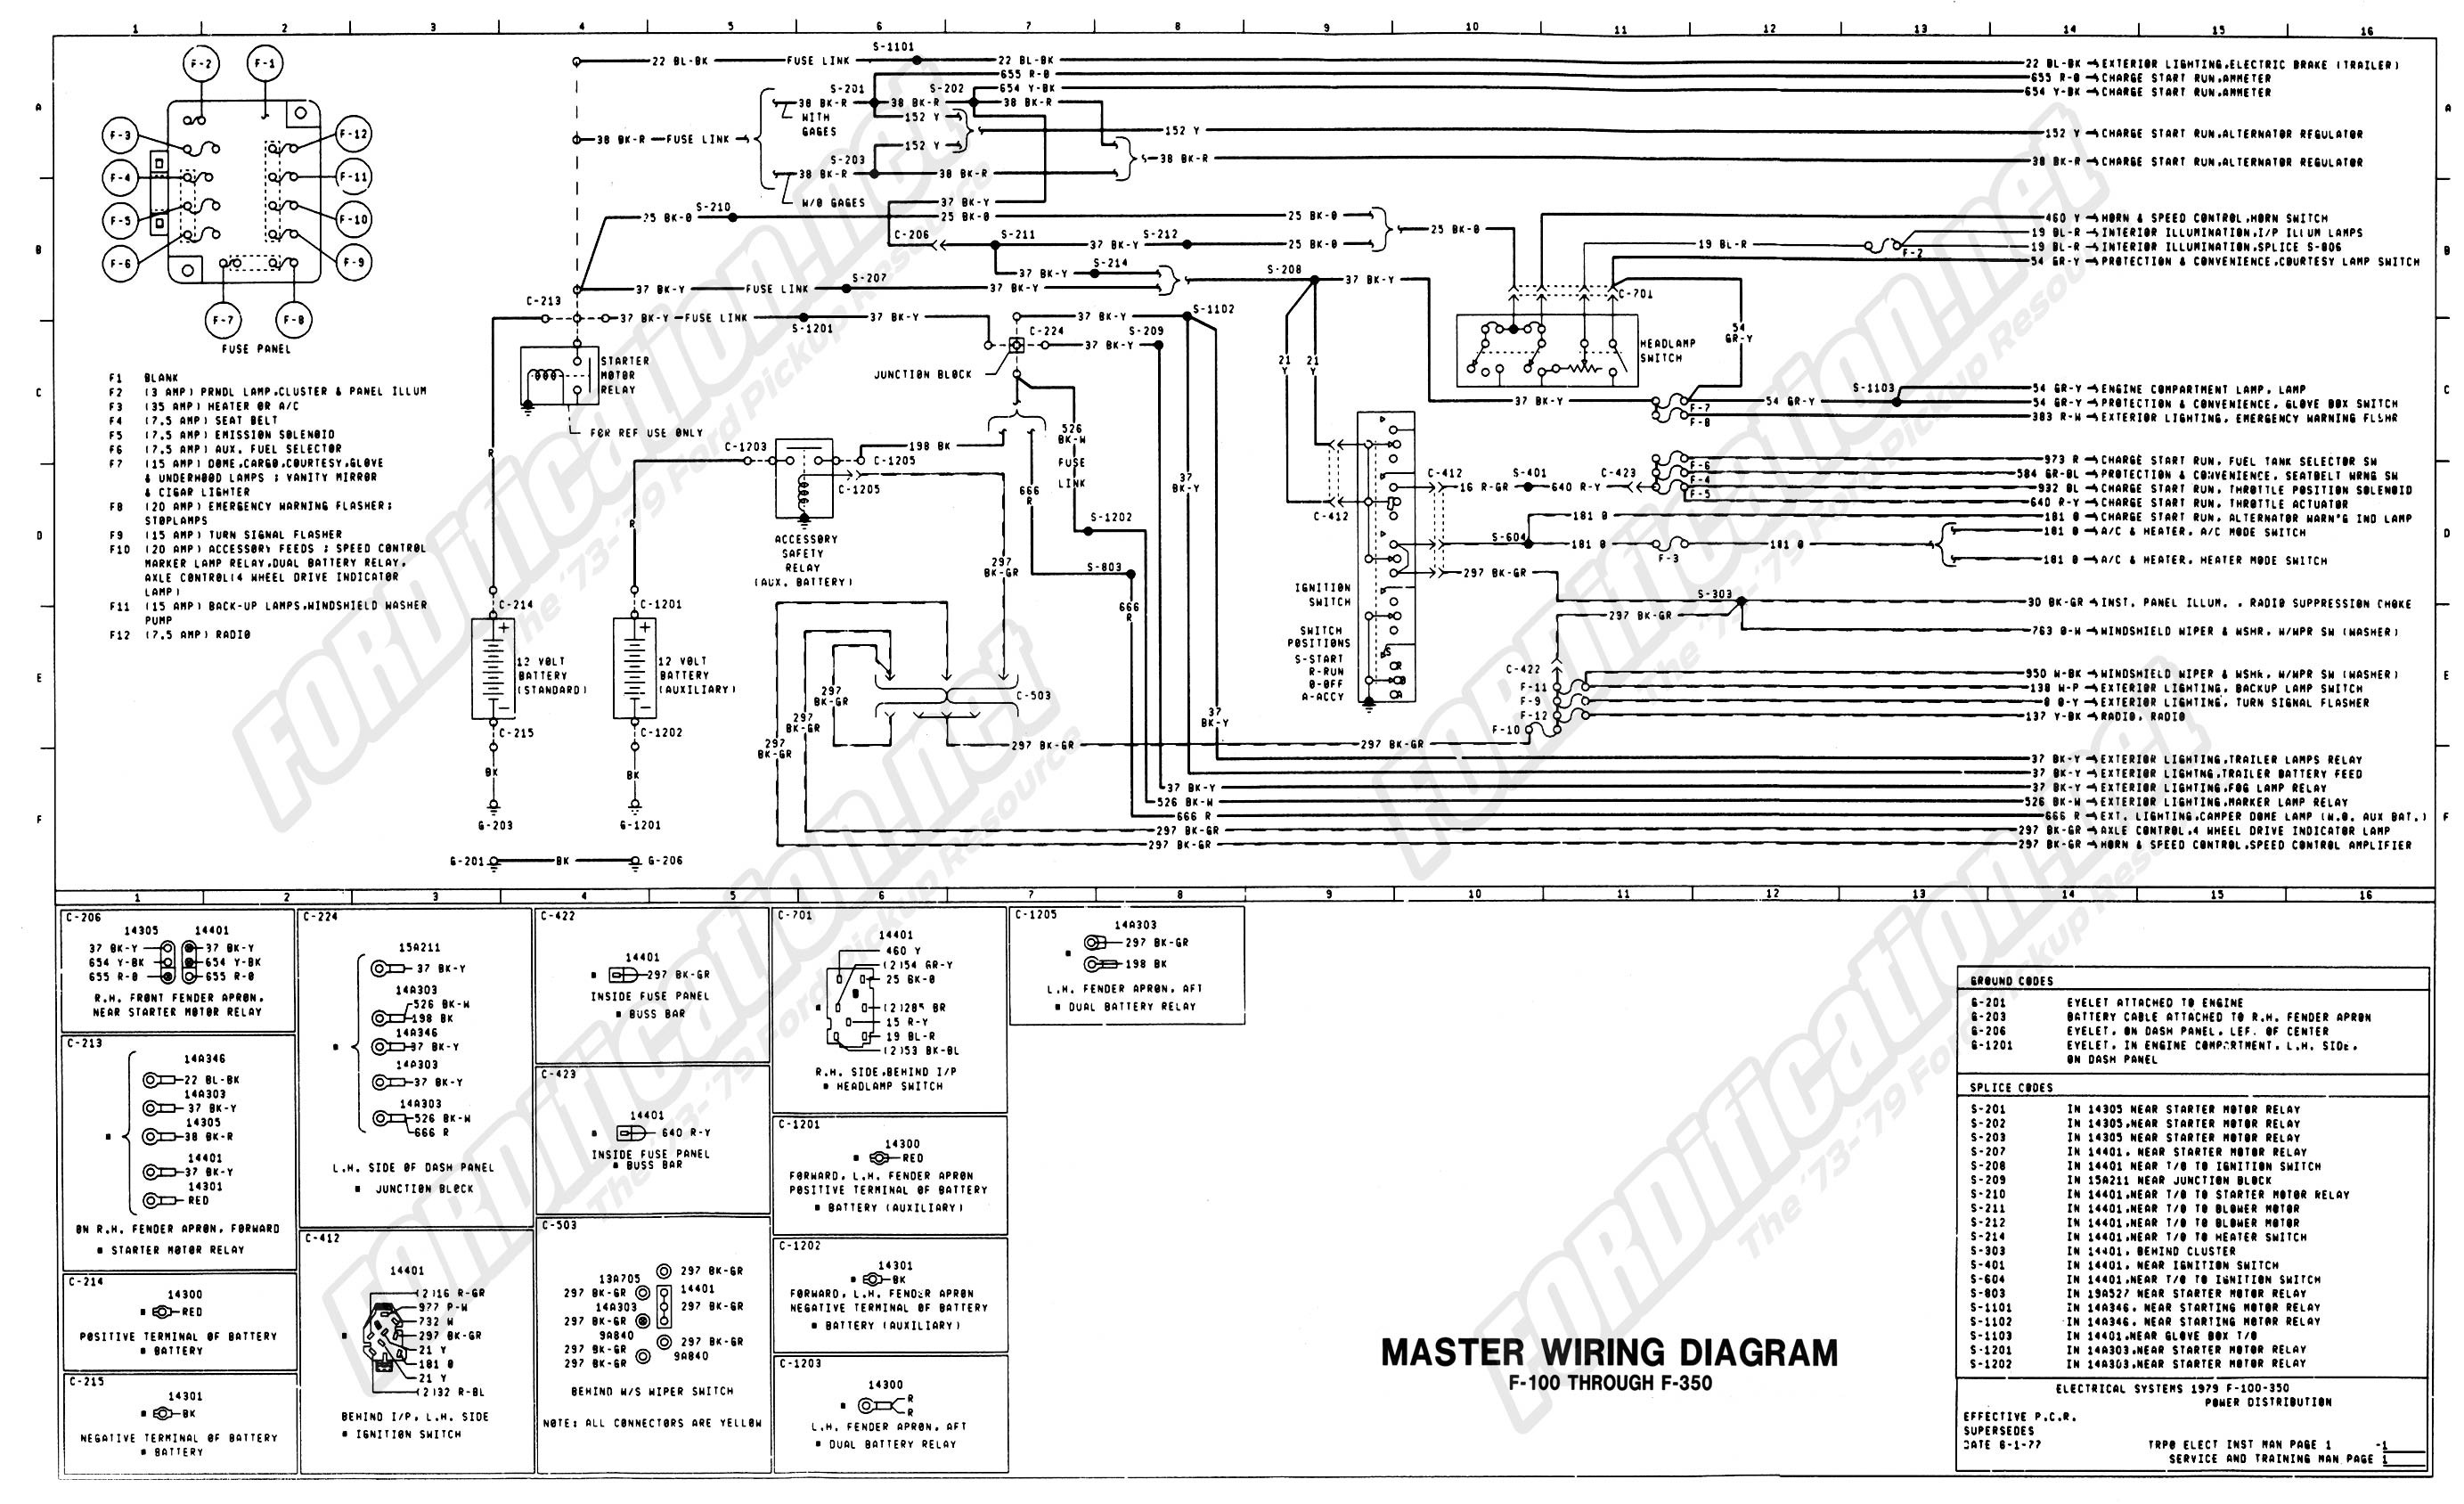 1982 Chevy Truck Wiring Diagram Corvette Chevrolet Diagrams For 79master 1of9 79 Of